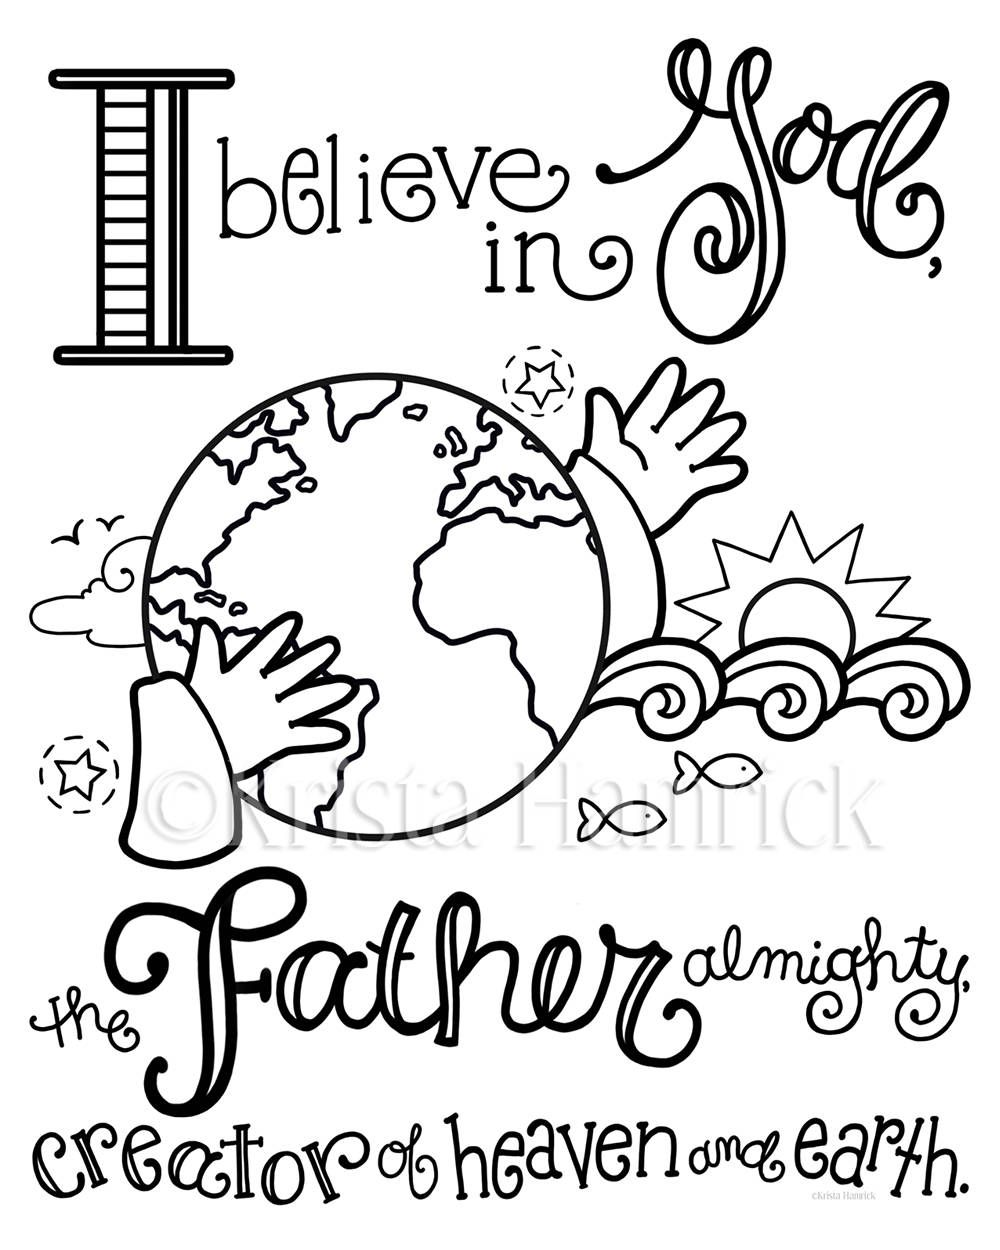 Download Or Print This Amazing Coloring Page Jesus Chose